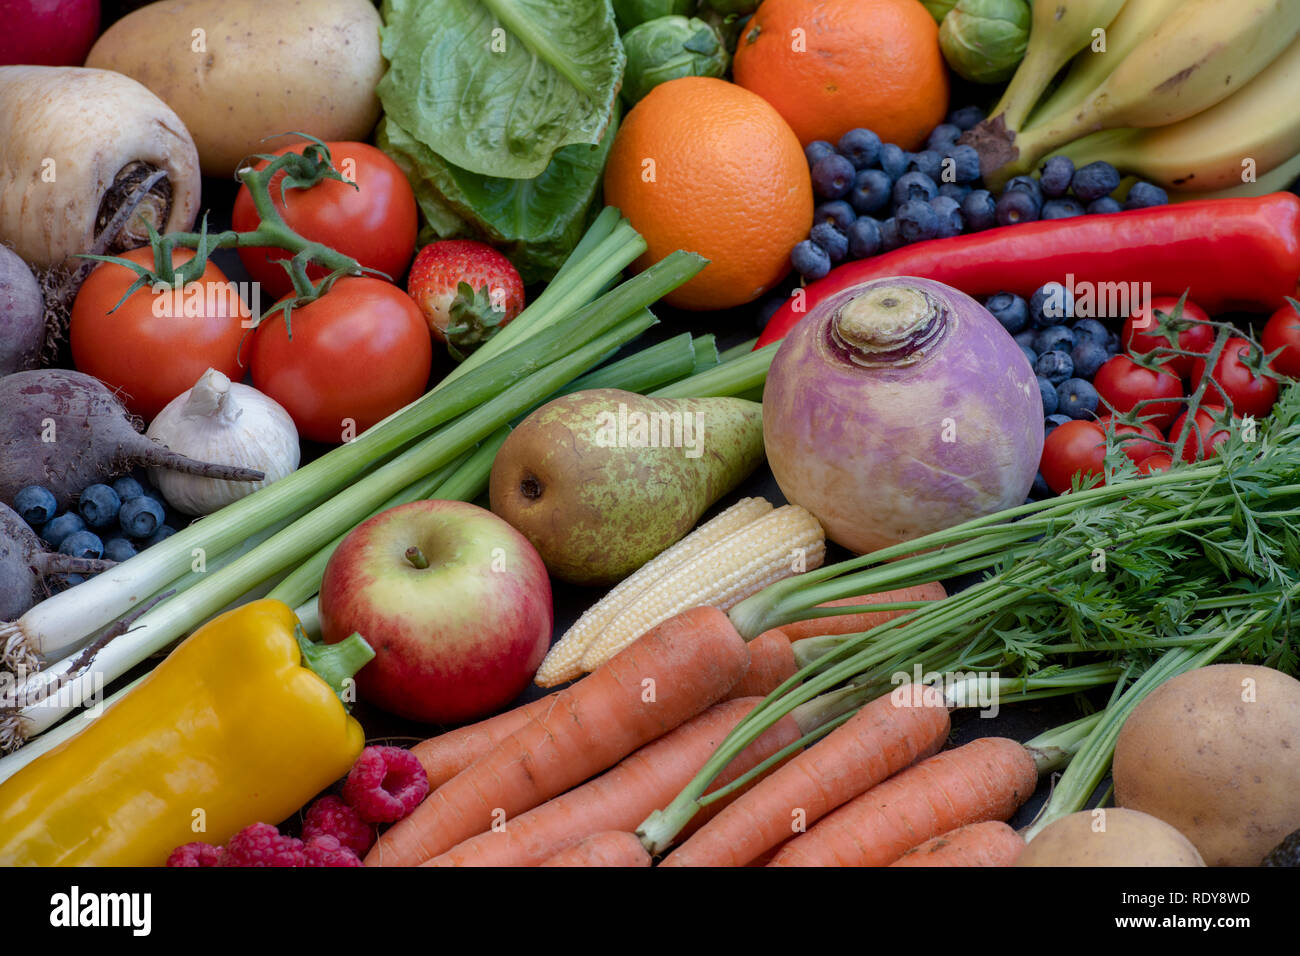 Fruit and vegetables on slate - Stock Image